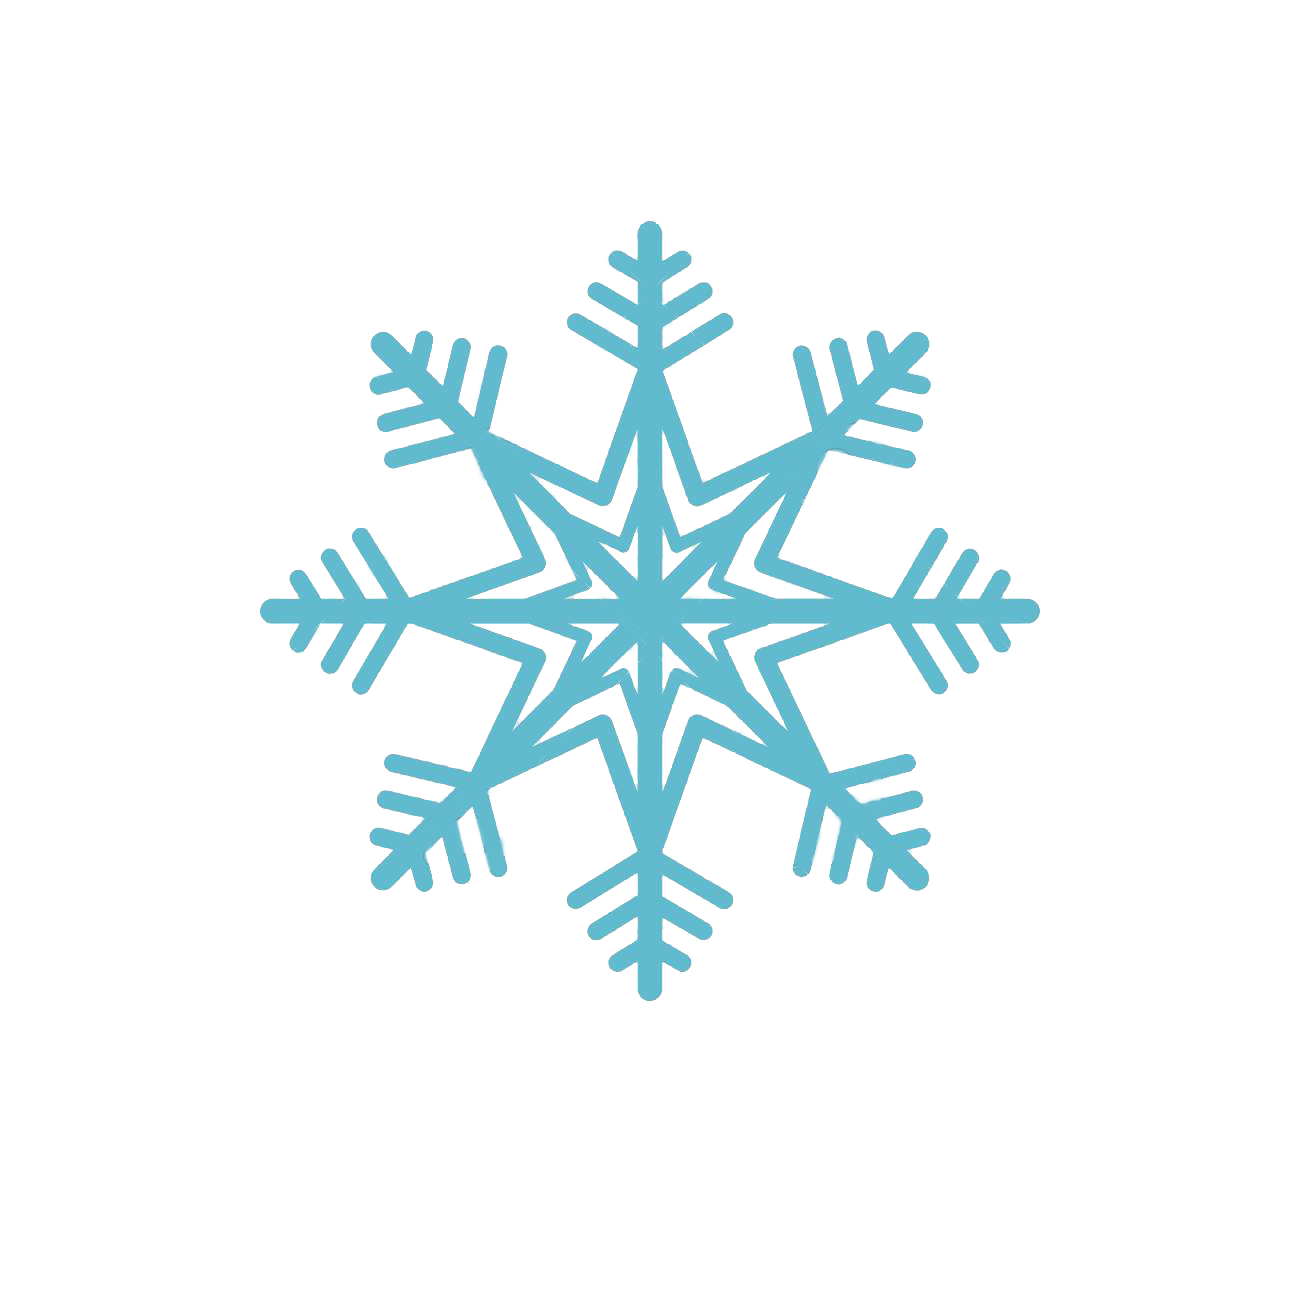 109059822-snowflake-vector-icon-isolated-on-transparent-background-snowflake-logo-concept